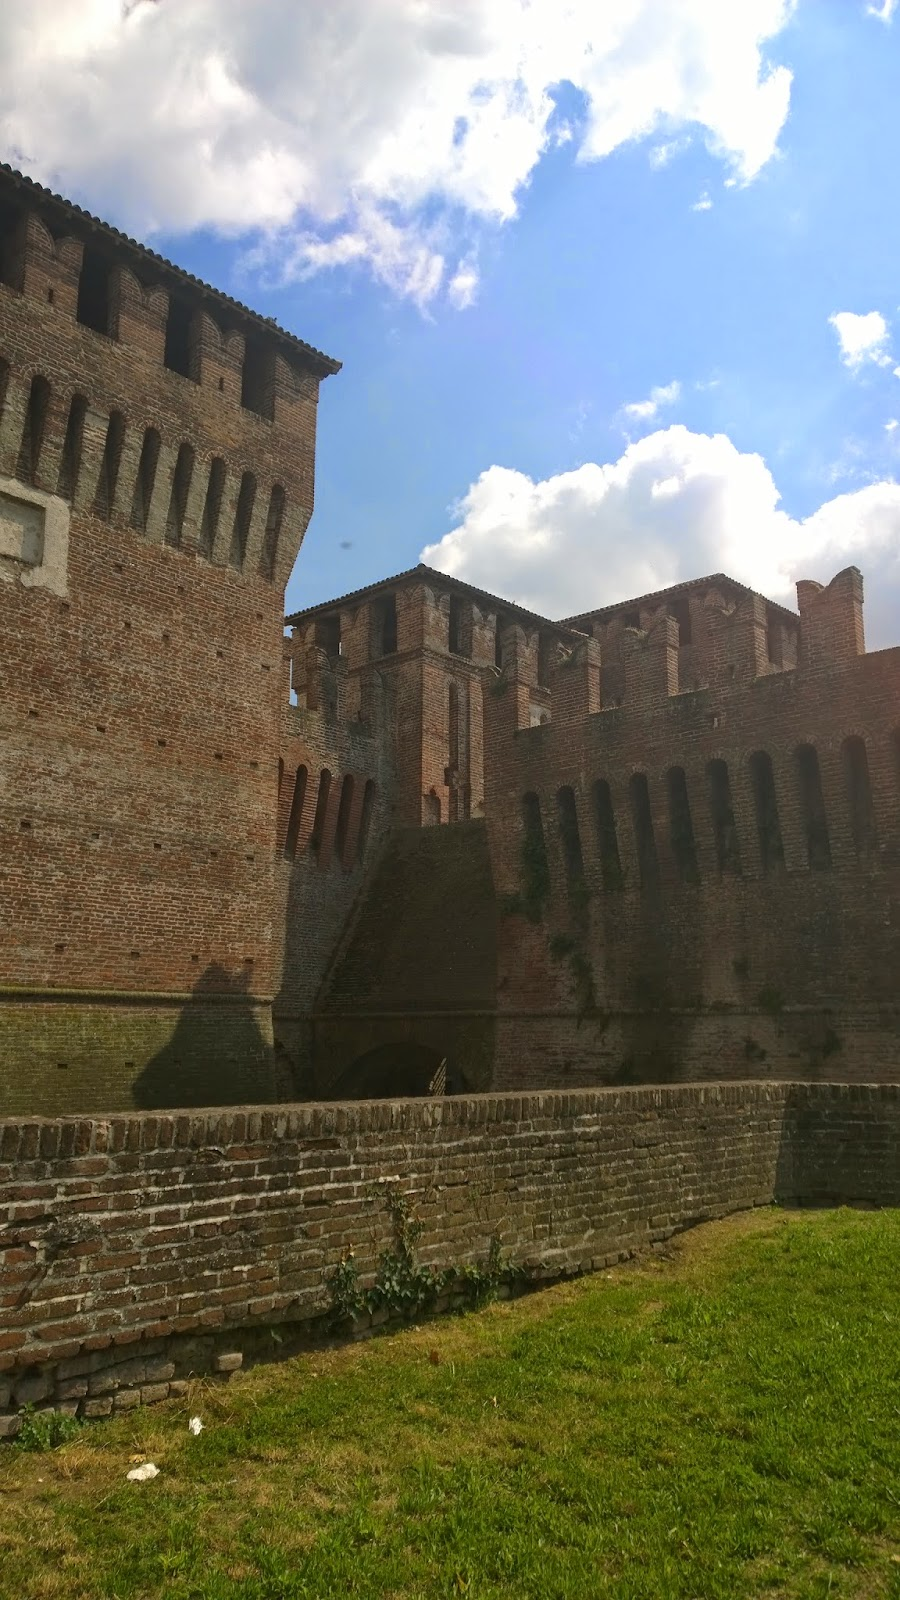 Castle at Soncino, Lombardy, Italy